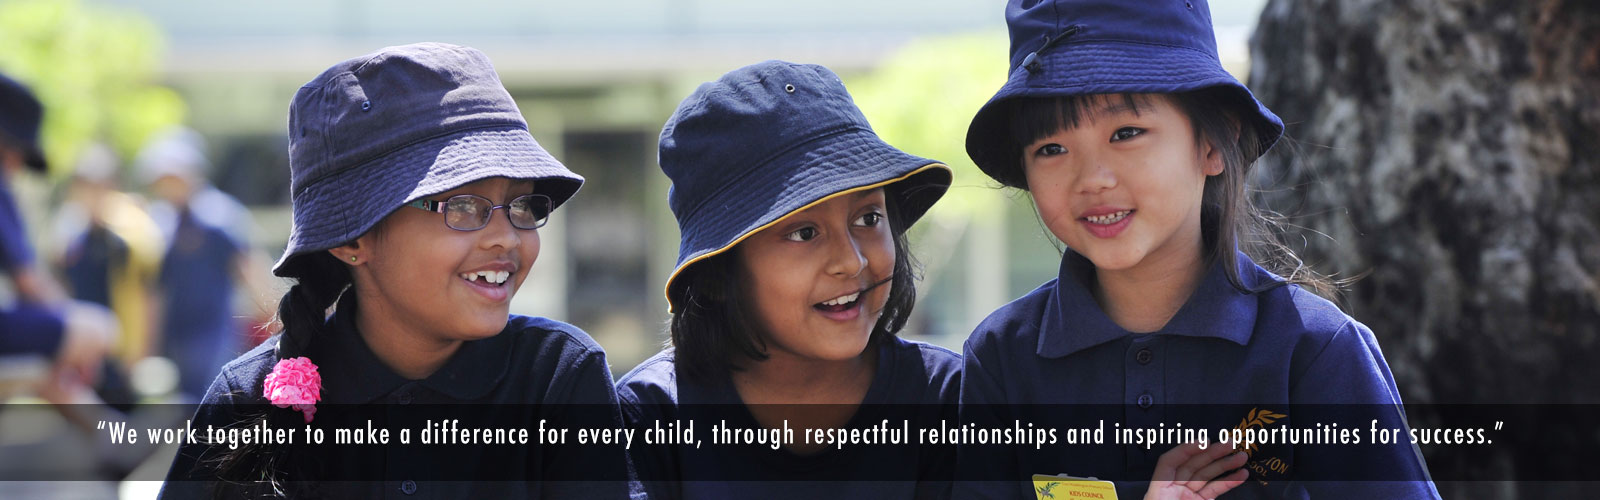 We work together to make a difference ofr every child, through respect relationships and inspiring opportunities for success